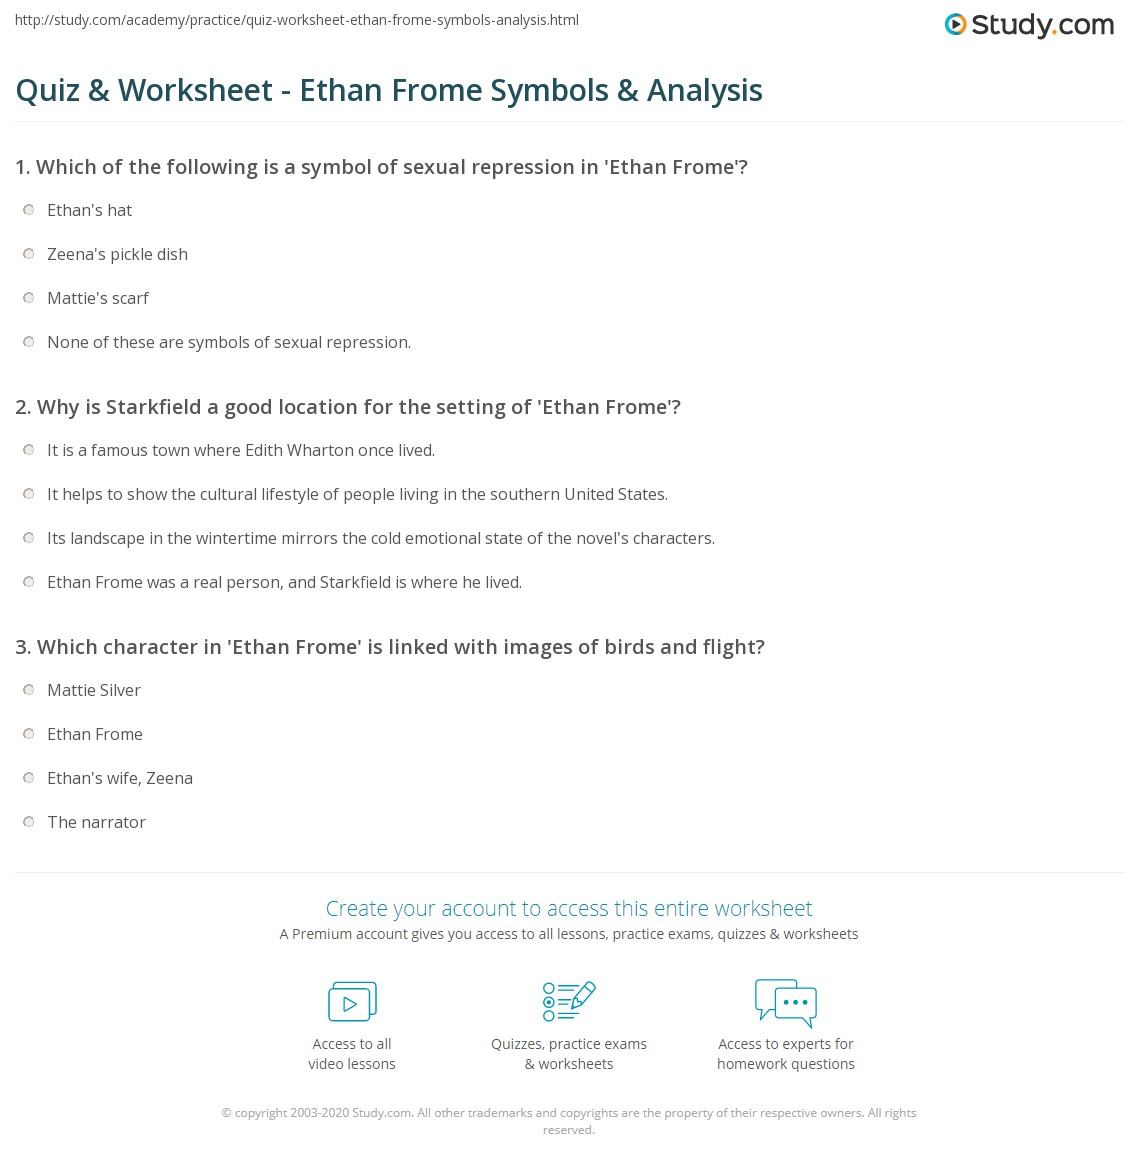 ethan frome symbolism browsing fan art on aaeefdafacdcbf png the  quiz worksheet ethan frome symbols analysis com print ethan frome symbols analysis worksheet